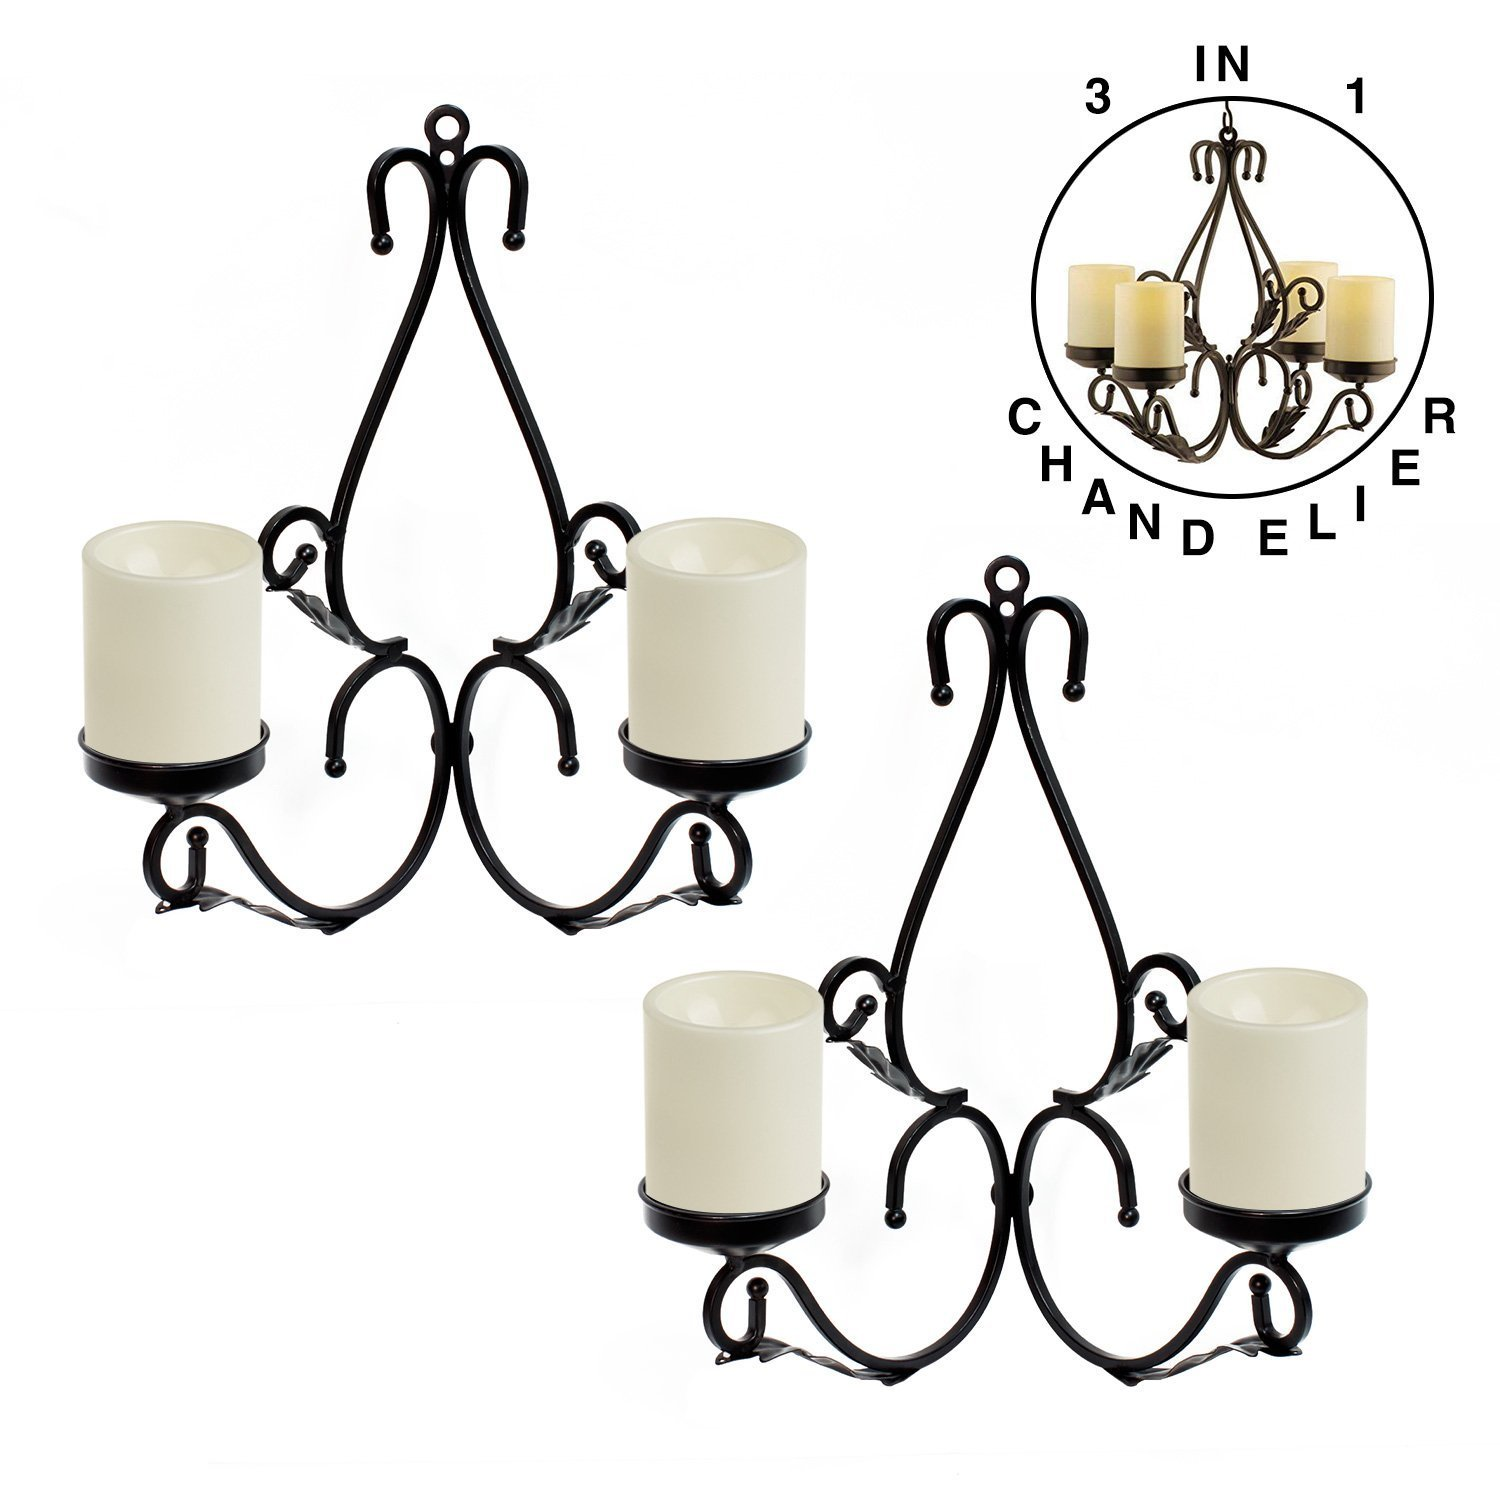 GiveU 3 IN 1 Lighting Chandelier, Metal Wall Sconce Set of 2, Table Centerpiece for Indoor or Outdoor, Chain and Candles Included, Black by GiveU (Image #2)